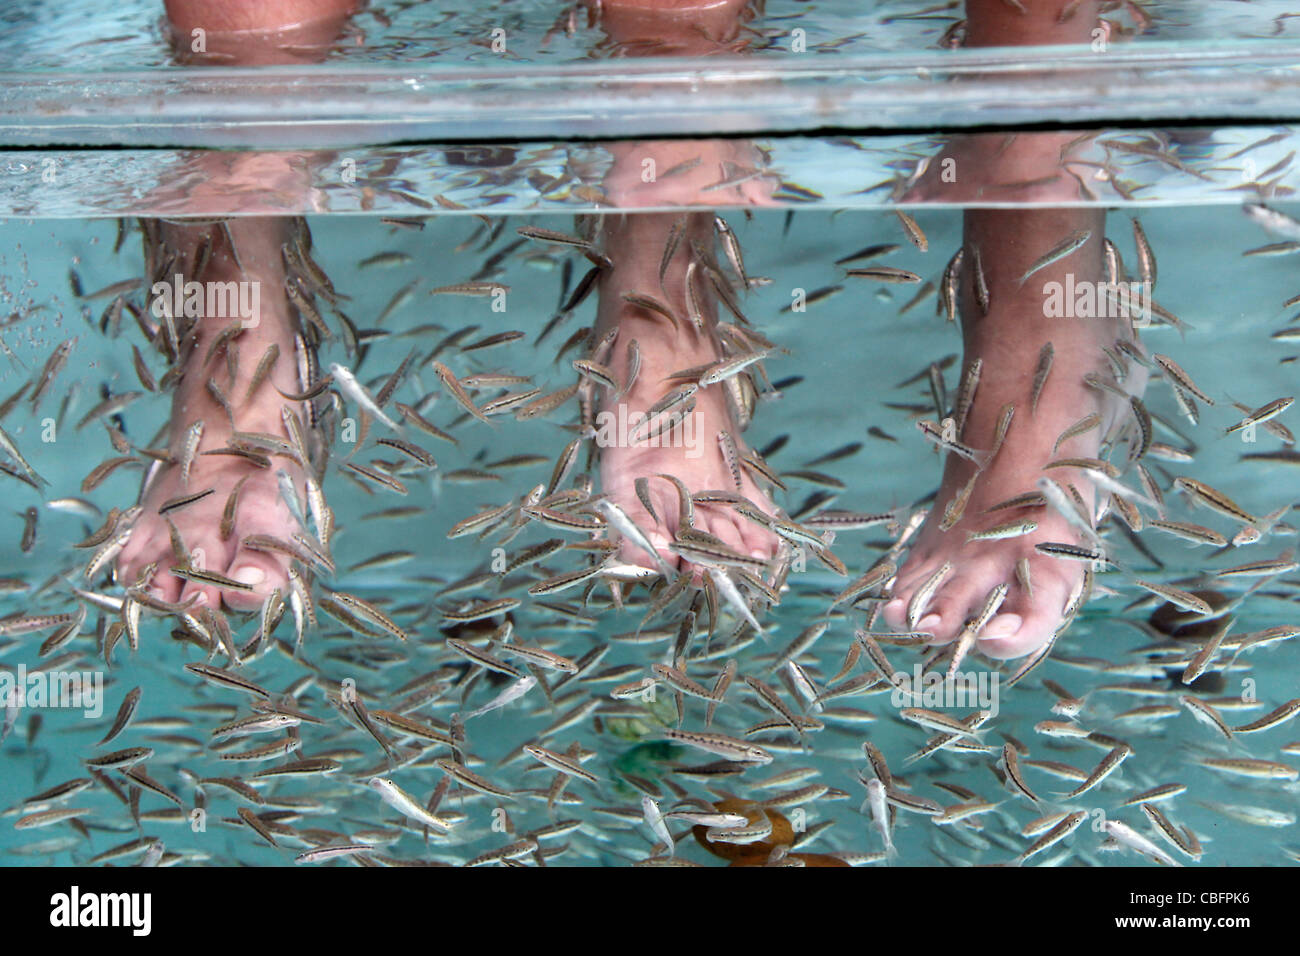 Fish spa therapy treatment showing people sitting with their feet and legs in a water tank with fish eating dead - Stock Image